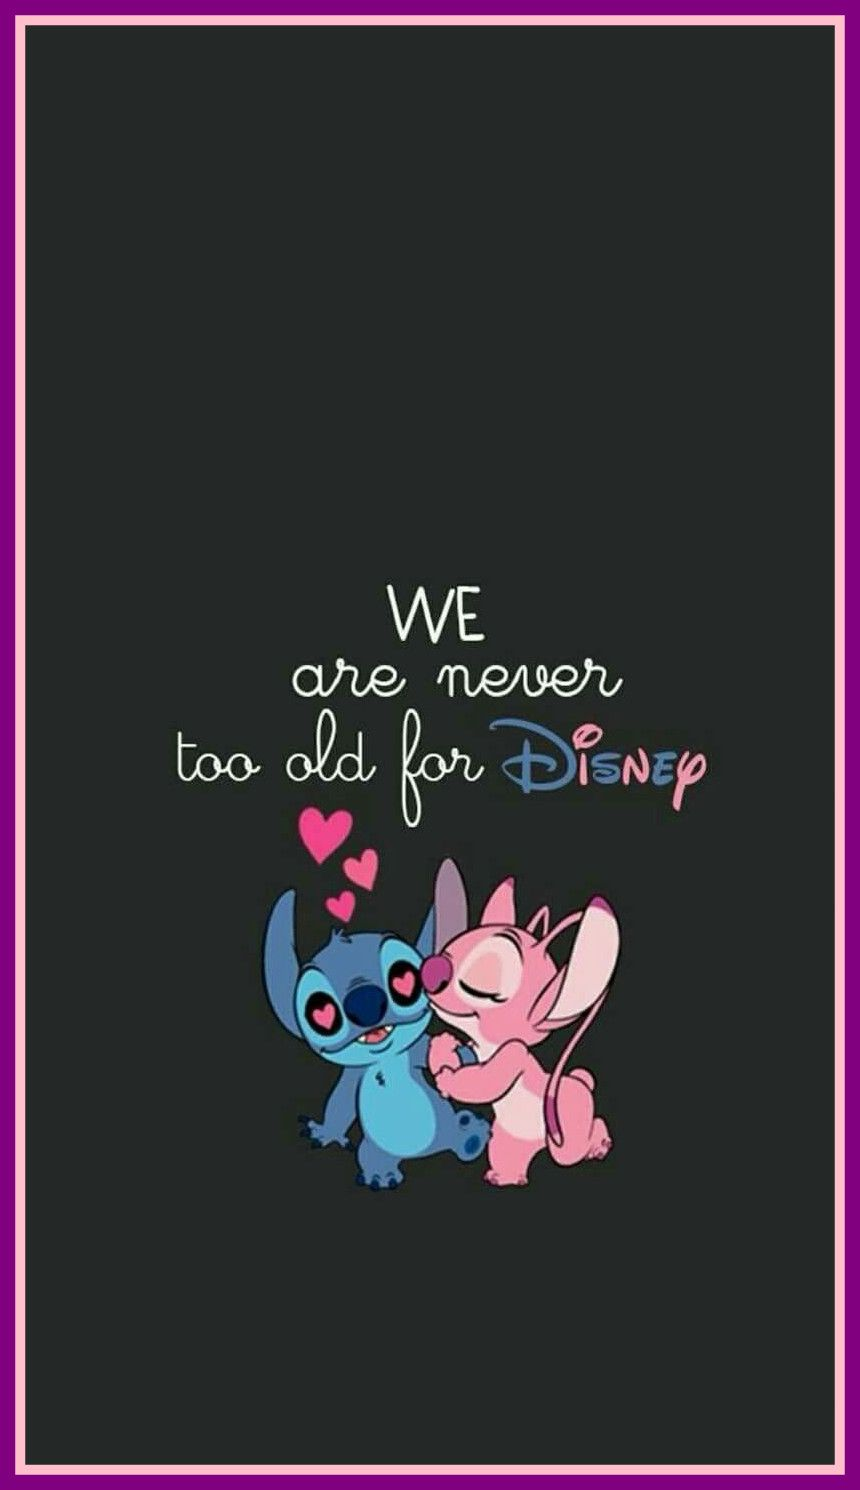 Lilo - Stitch We Never Never Too Old For Disney Free Wallpaper